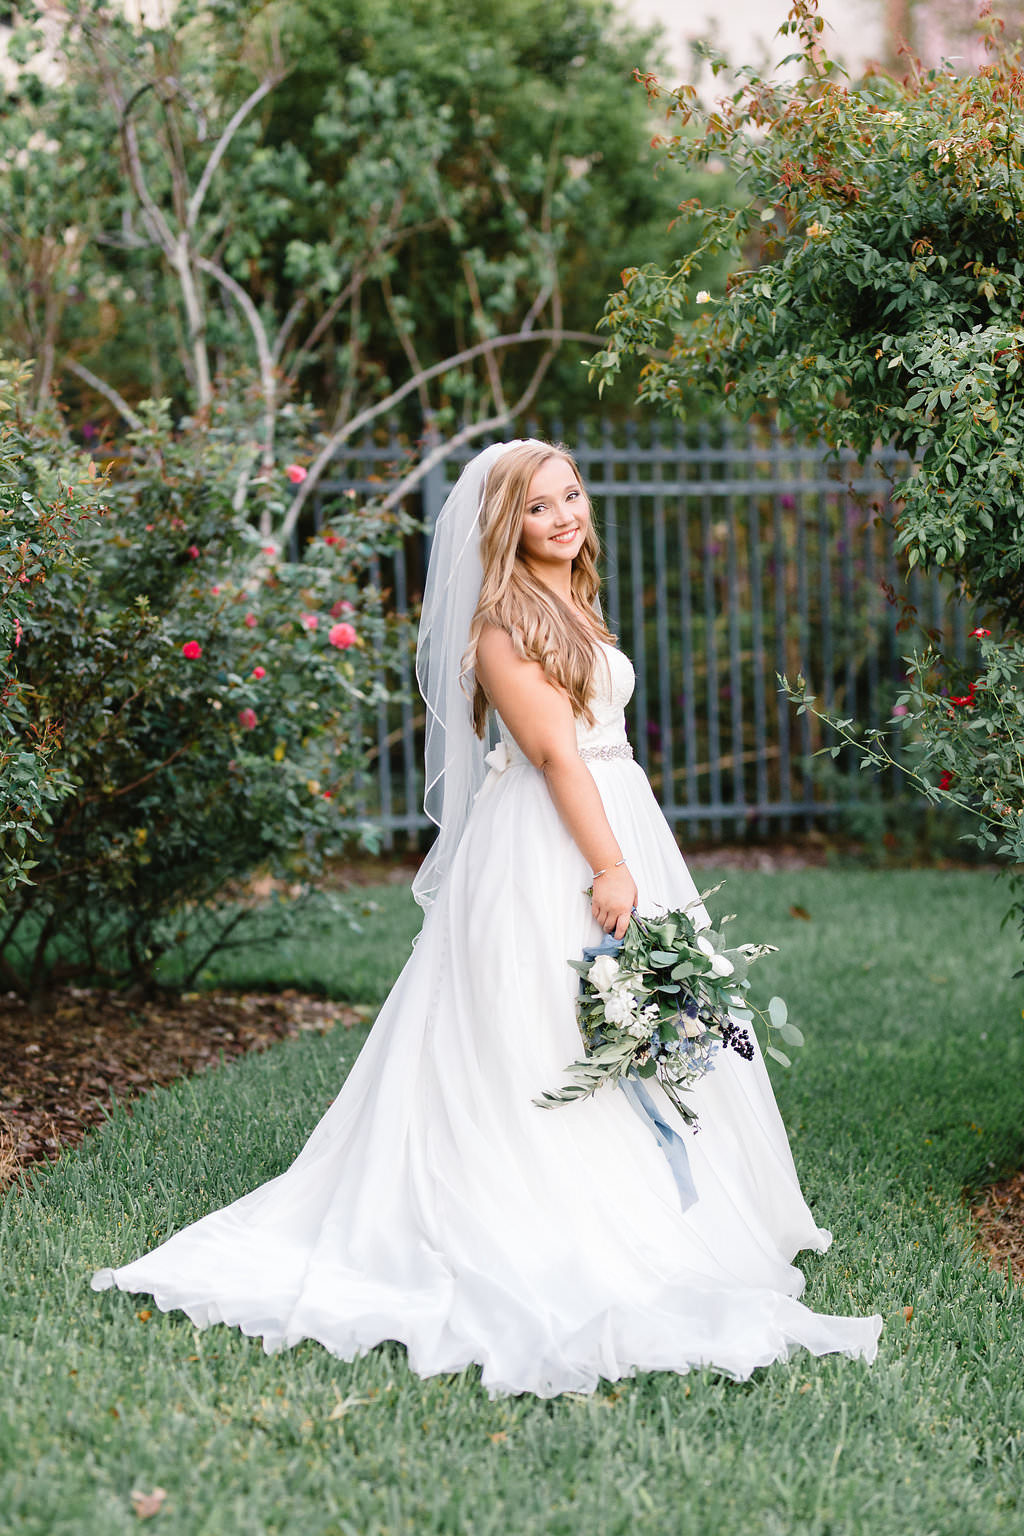 Florida Bride Outdoor Wedding Portrait, Bride in Strapless Sweetheart Lace Bodice, Tulle and Organza Ball Gown Skirt with Rhinestone Belt and Wild Organic White, Blue, Silver Dollar Eucalyptus Floral Bouquet